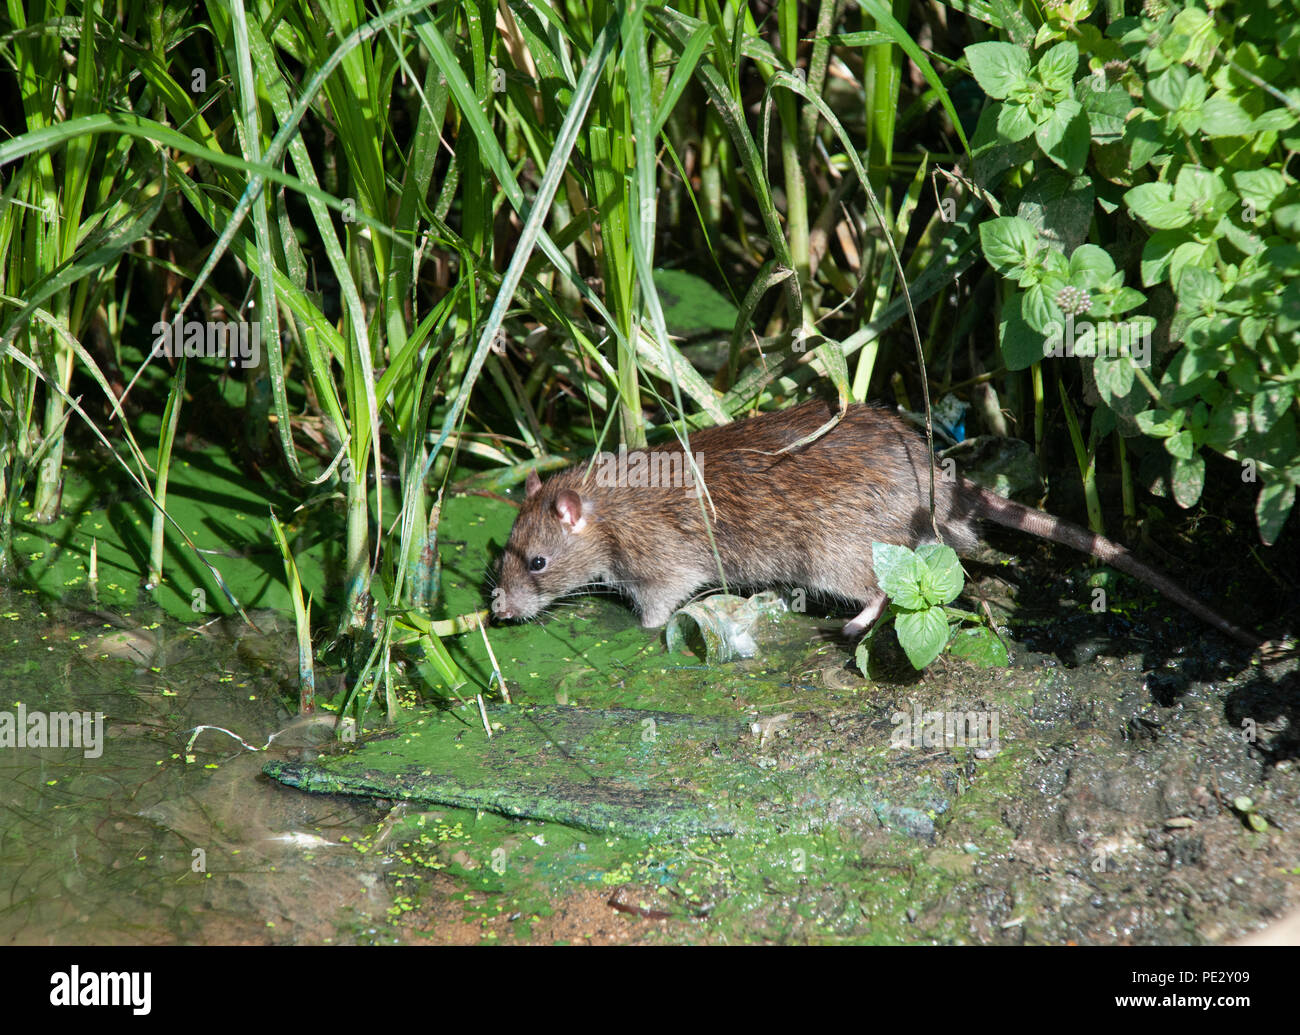 Brown Rat, (Rattus norvegicus), River Brent, near Brent Reservoir, also known as Welsh Harp Reservoir, Brent, London, United Kingdom - Stock Image